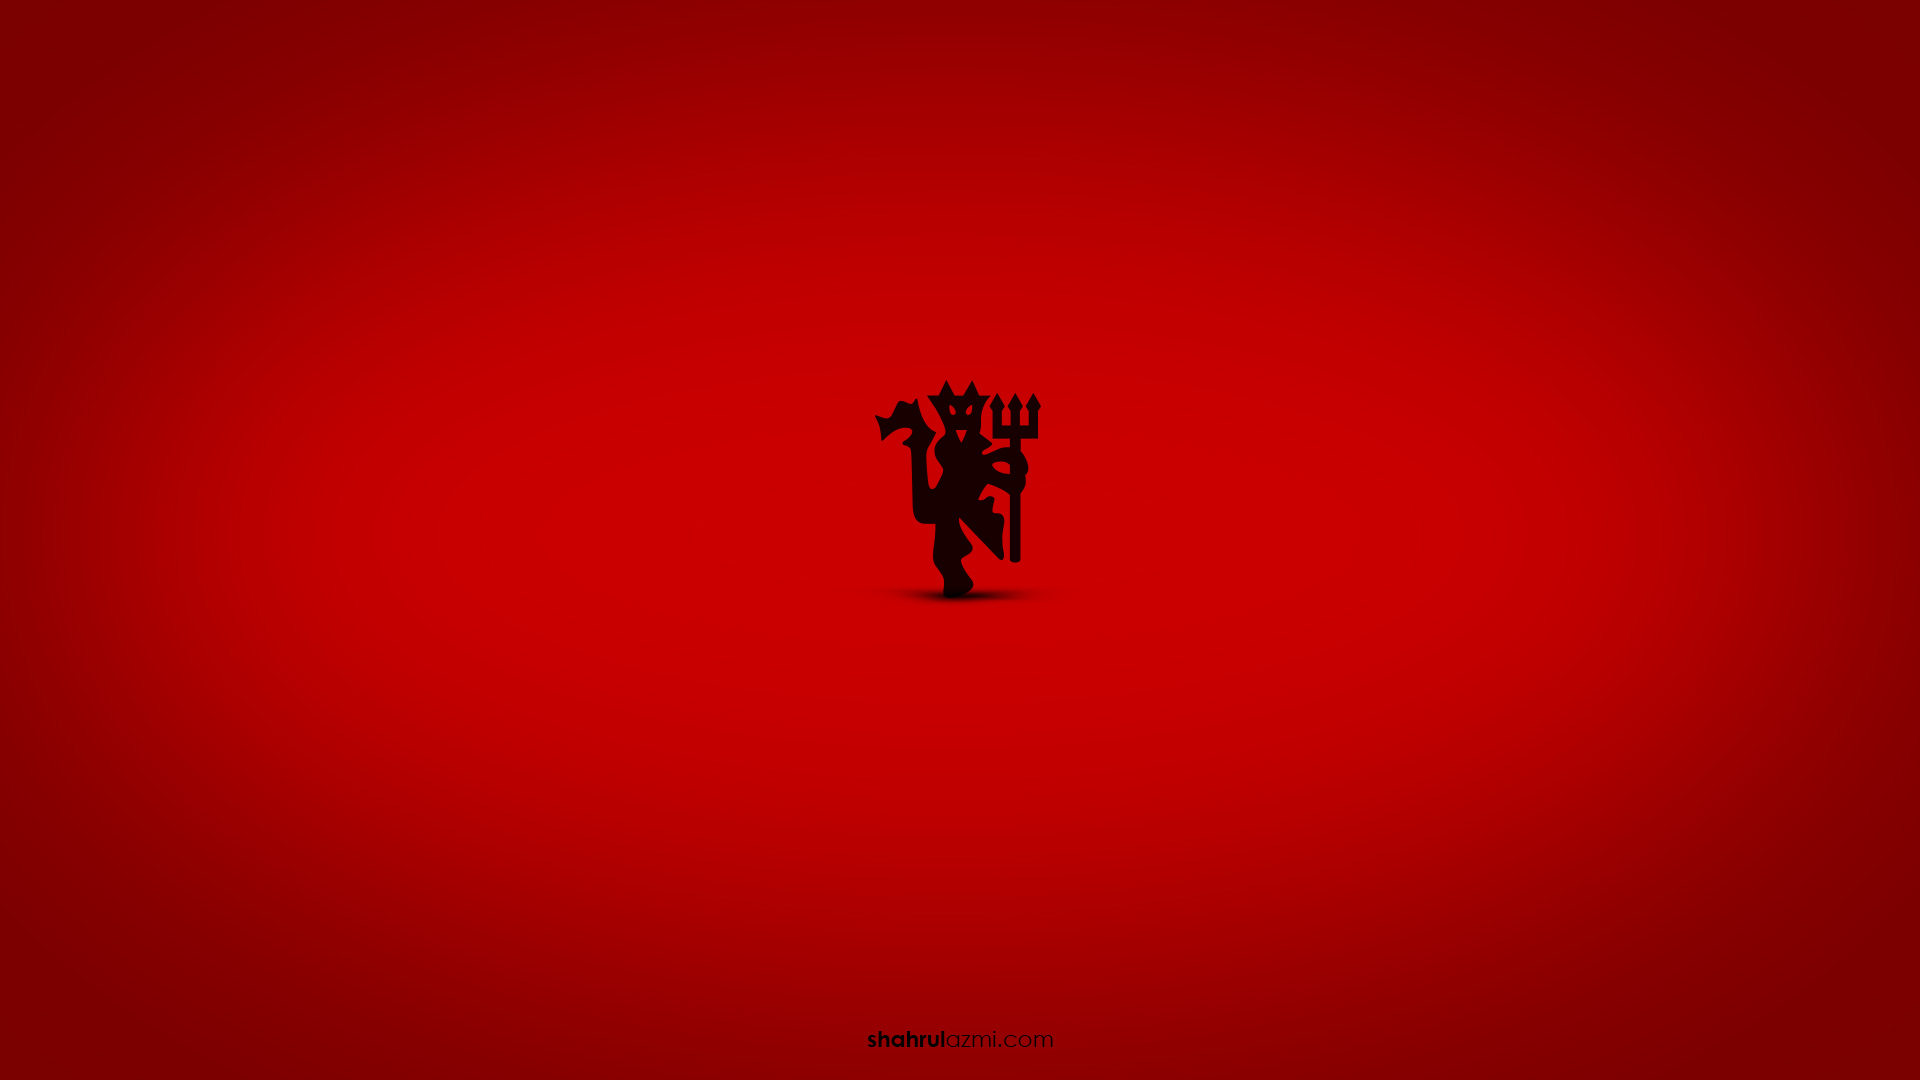 14+ Manchester United Wallpaper 2020 Team